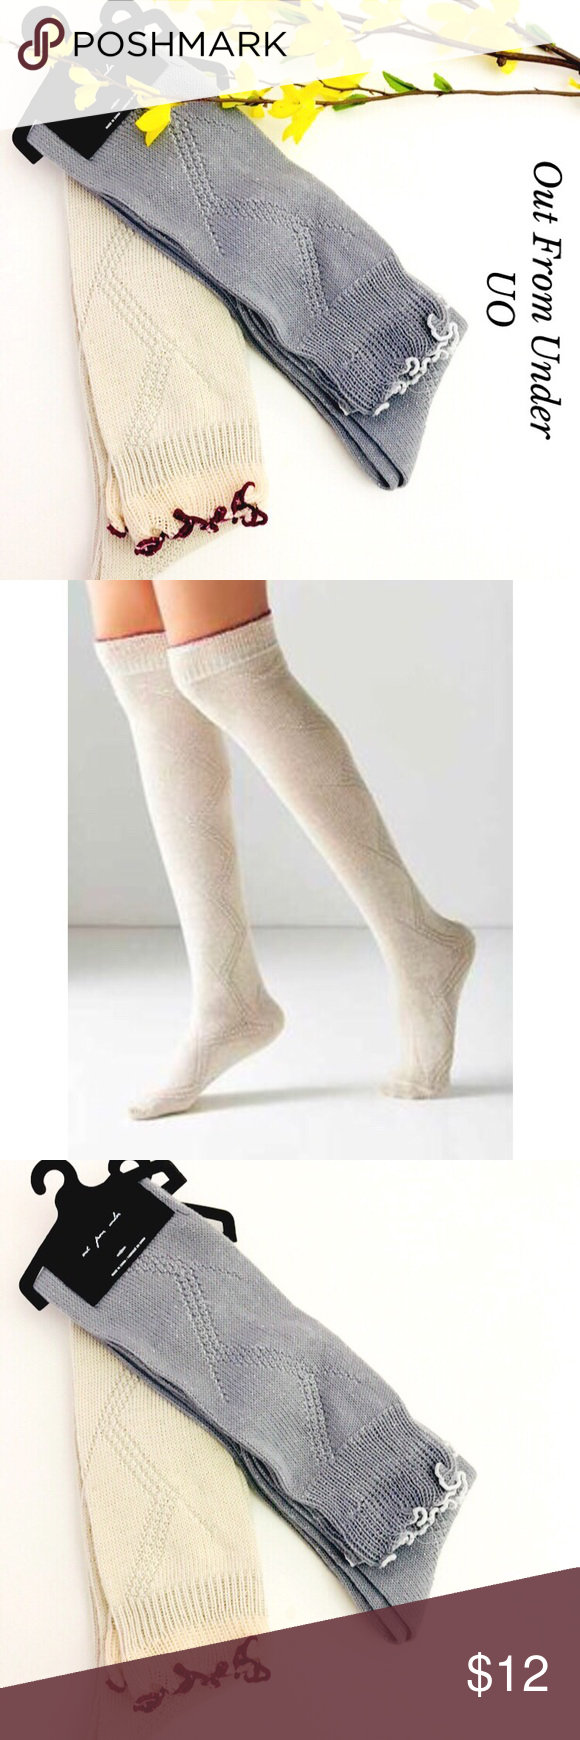 86b192d8499 URBAN OUTFITTERS OUT FROM UNDER THIGH HIGH SOCKS NWT. Gorgeous Urban  Outfitters Out From Under